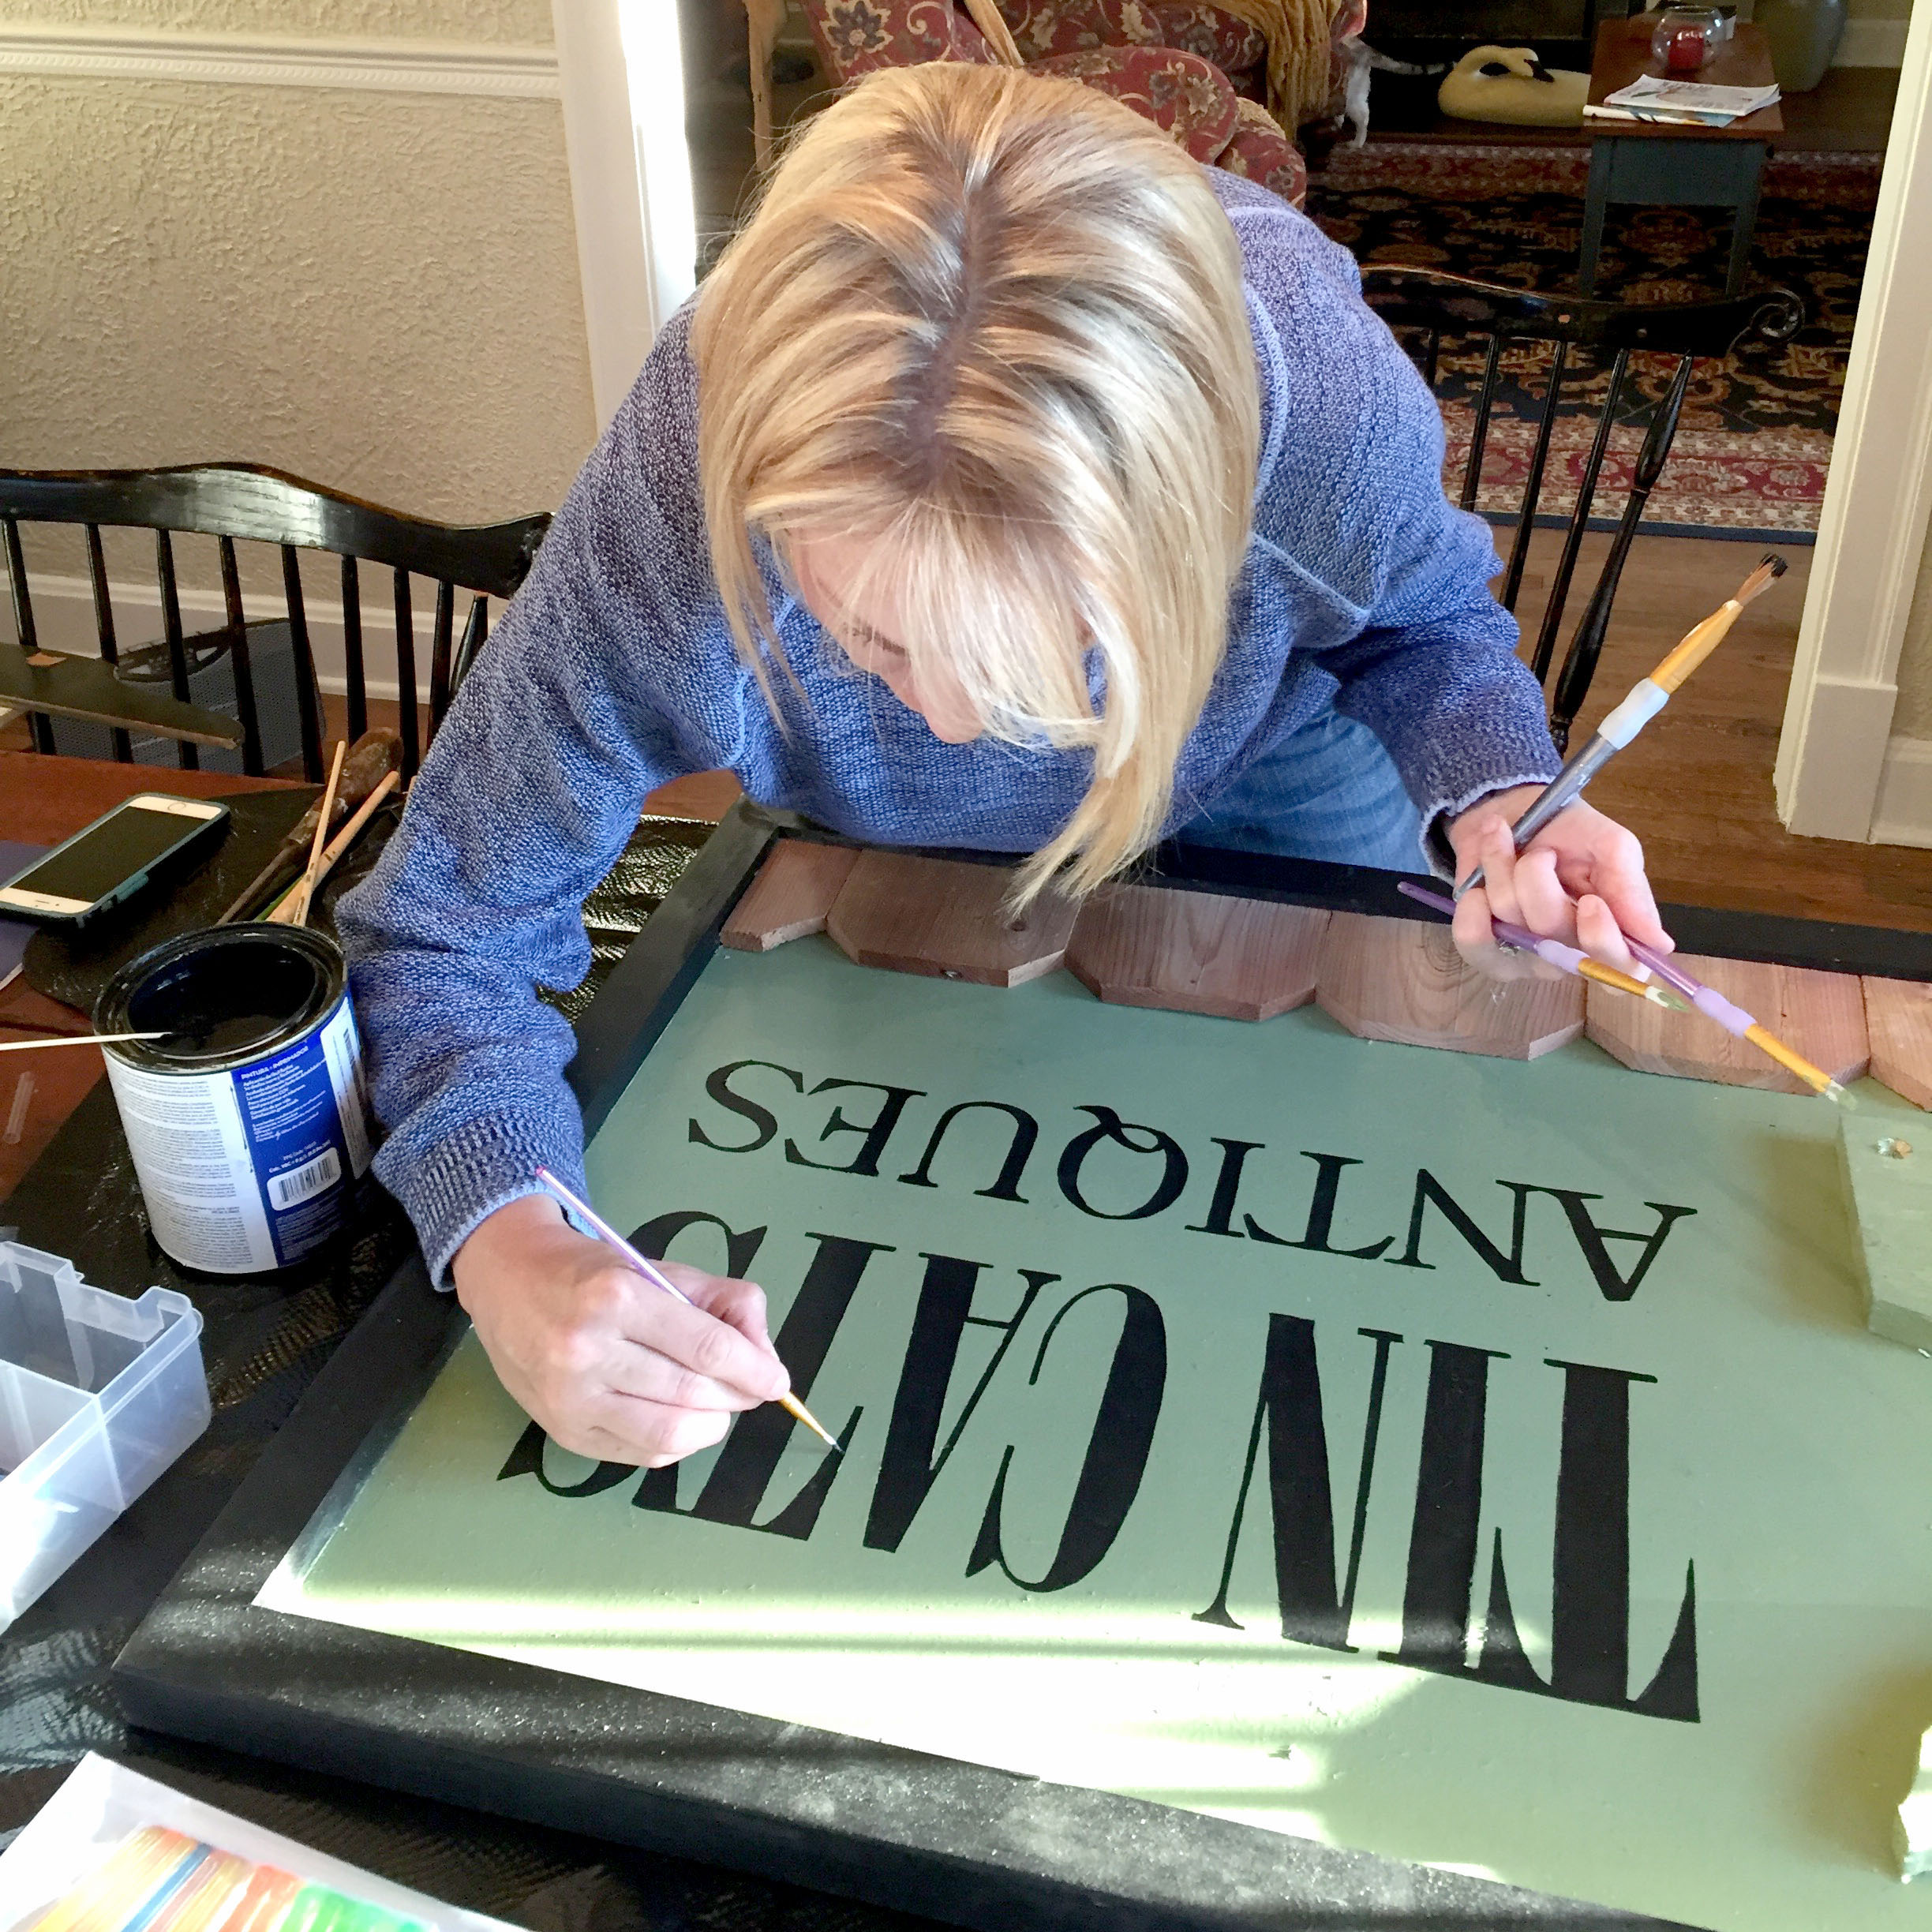 Jami Wilmarth touches up the lettering on the Tin Cats Antiques sign.